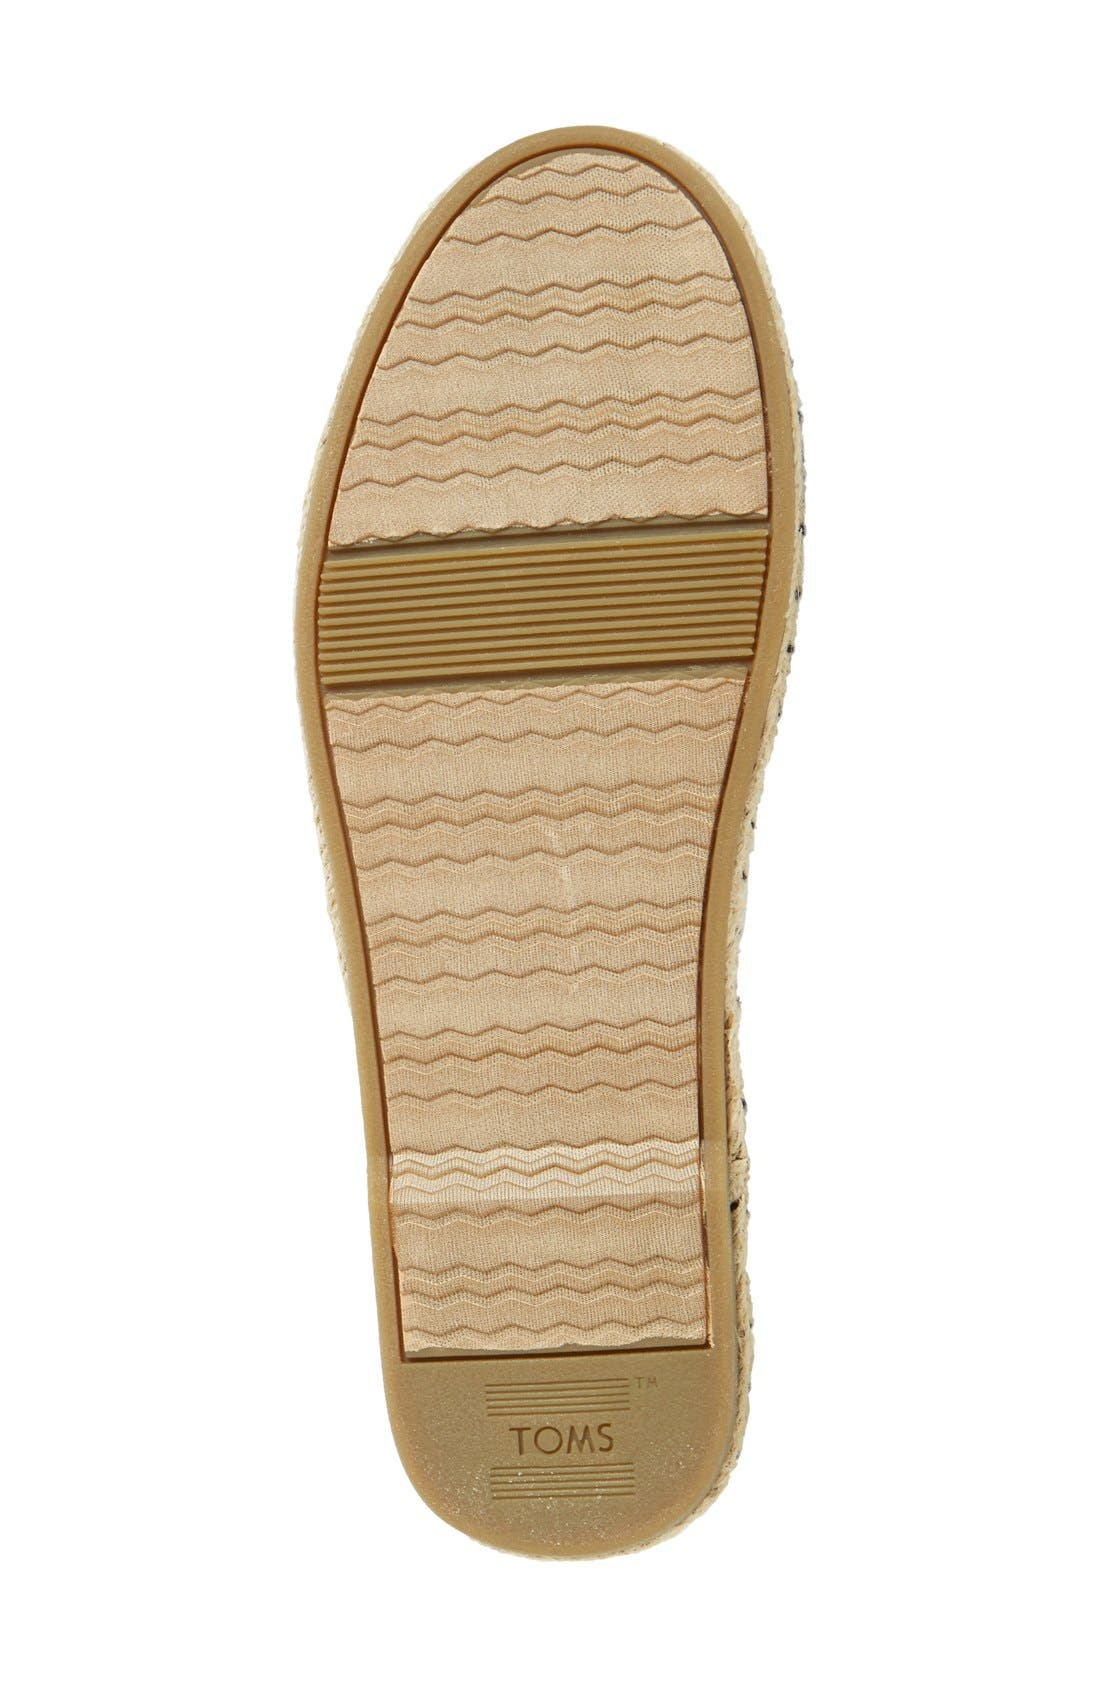 'Bella' Espadrille Sandal,                             Alternate thumbnail 2, color,                             001